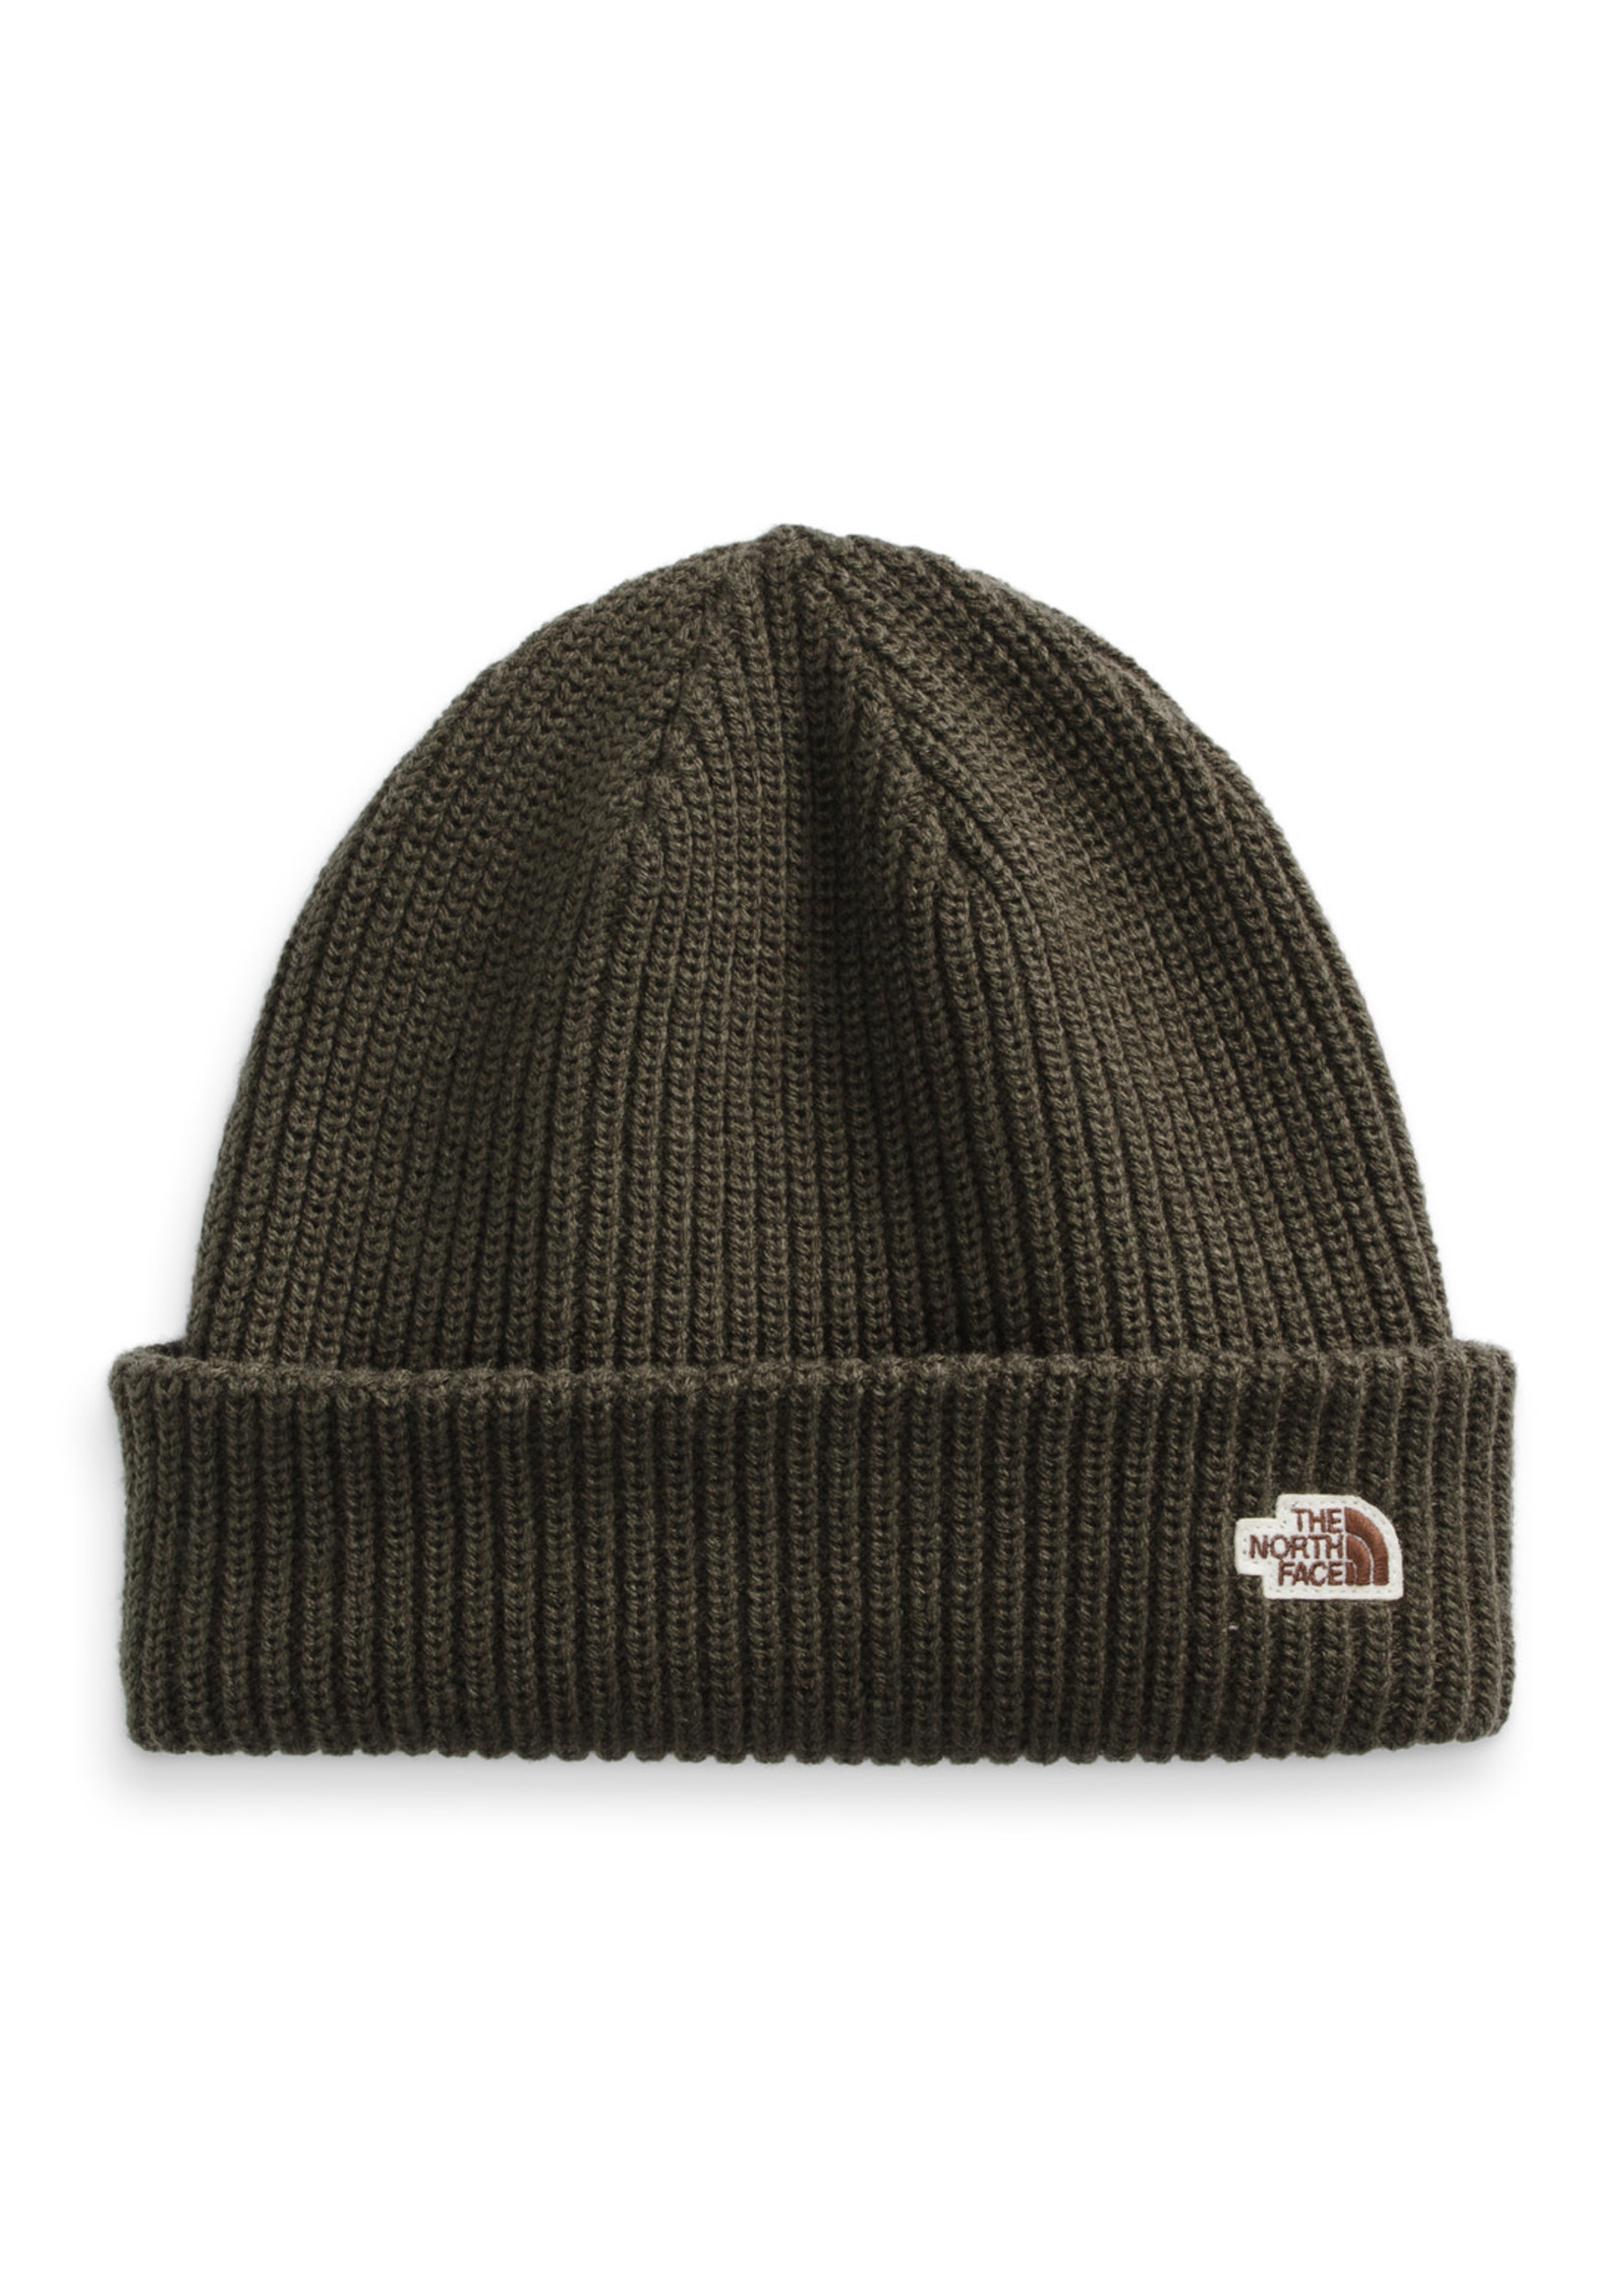 THE NORTH FACE Tuque Salty Dog